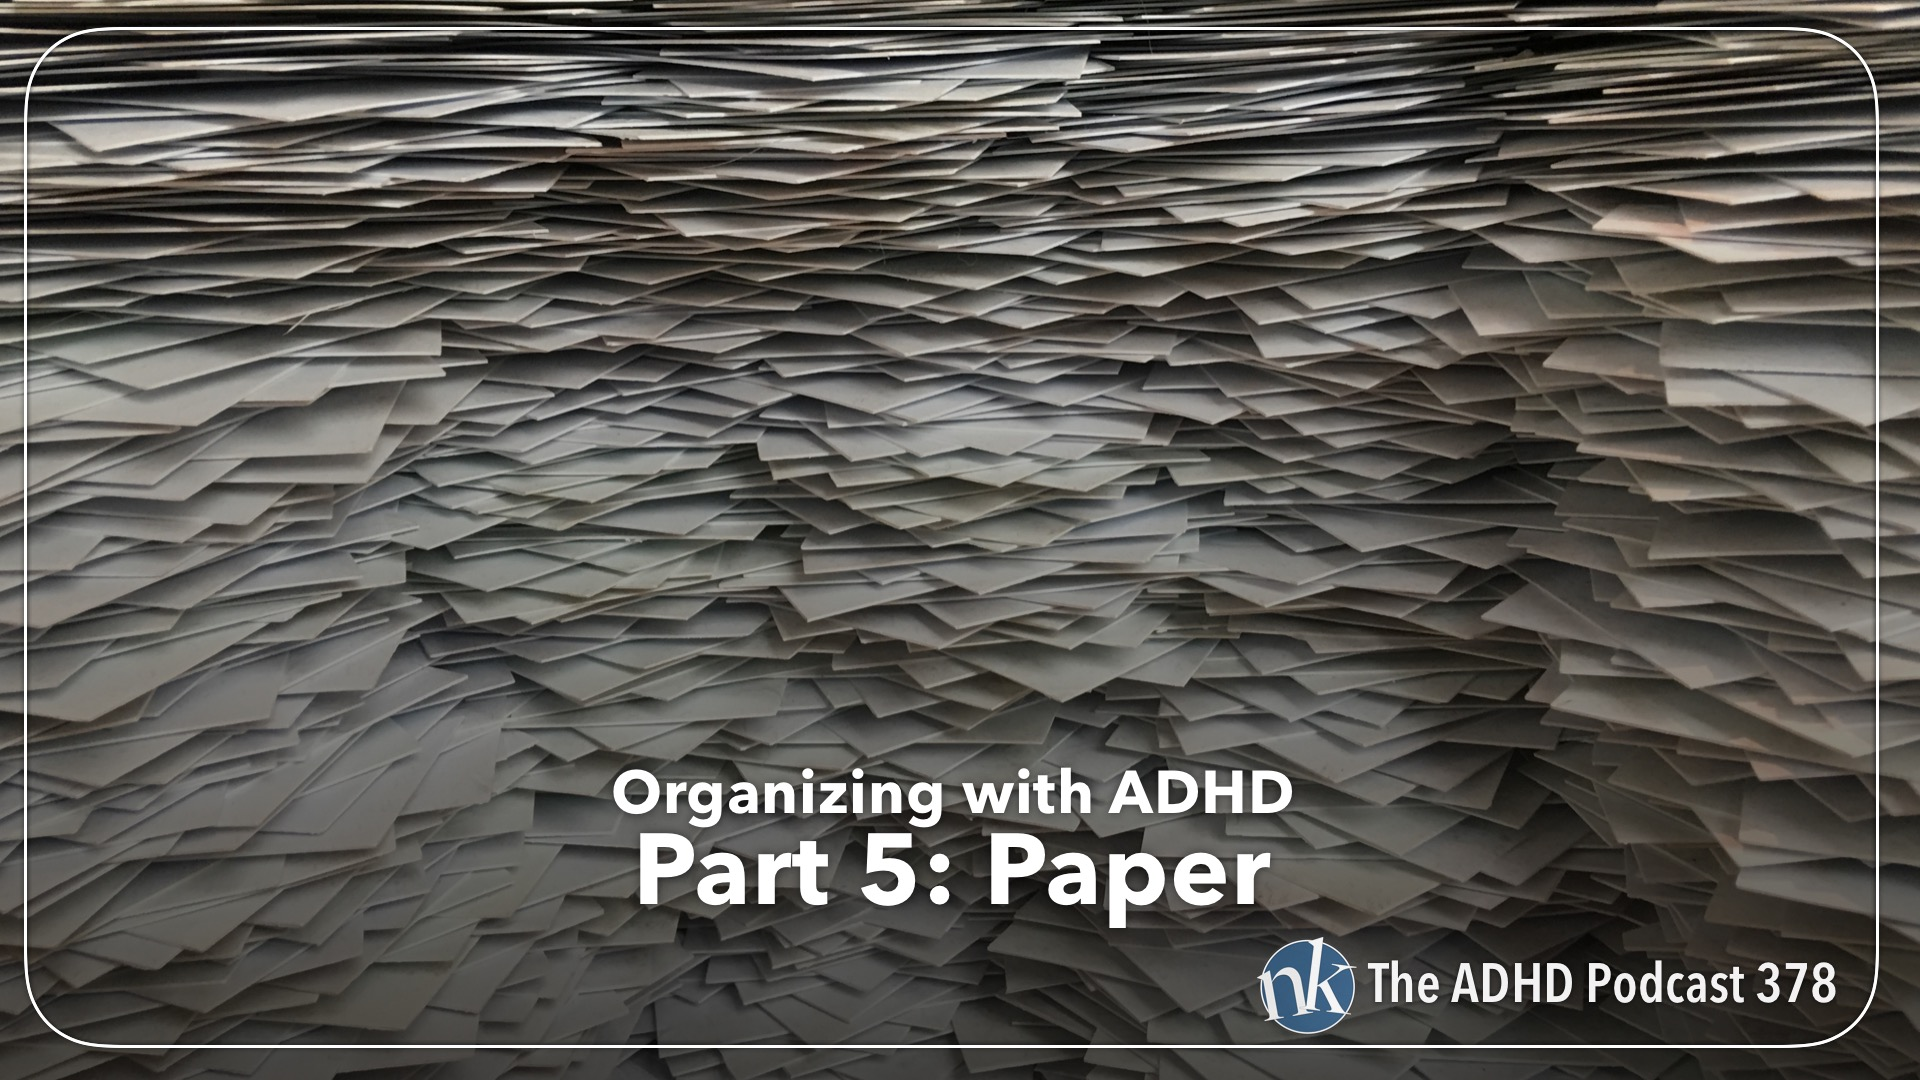 Organizing Paper with ADHD on The ADHD Podcast